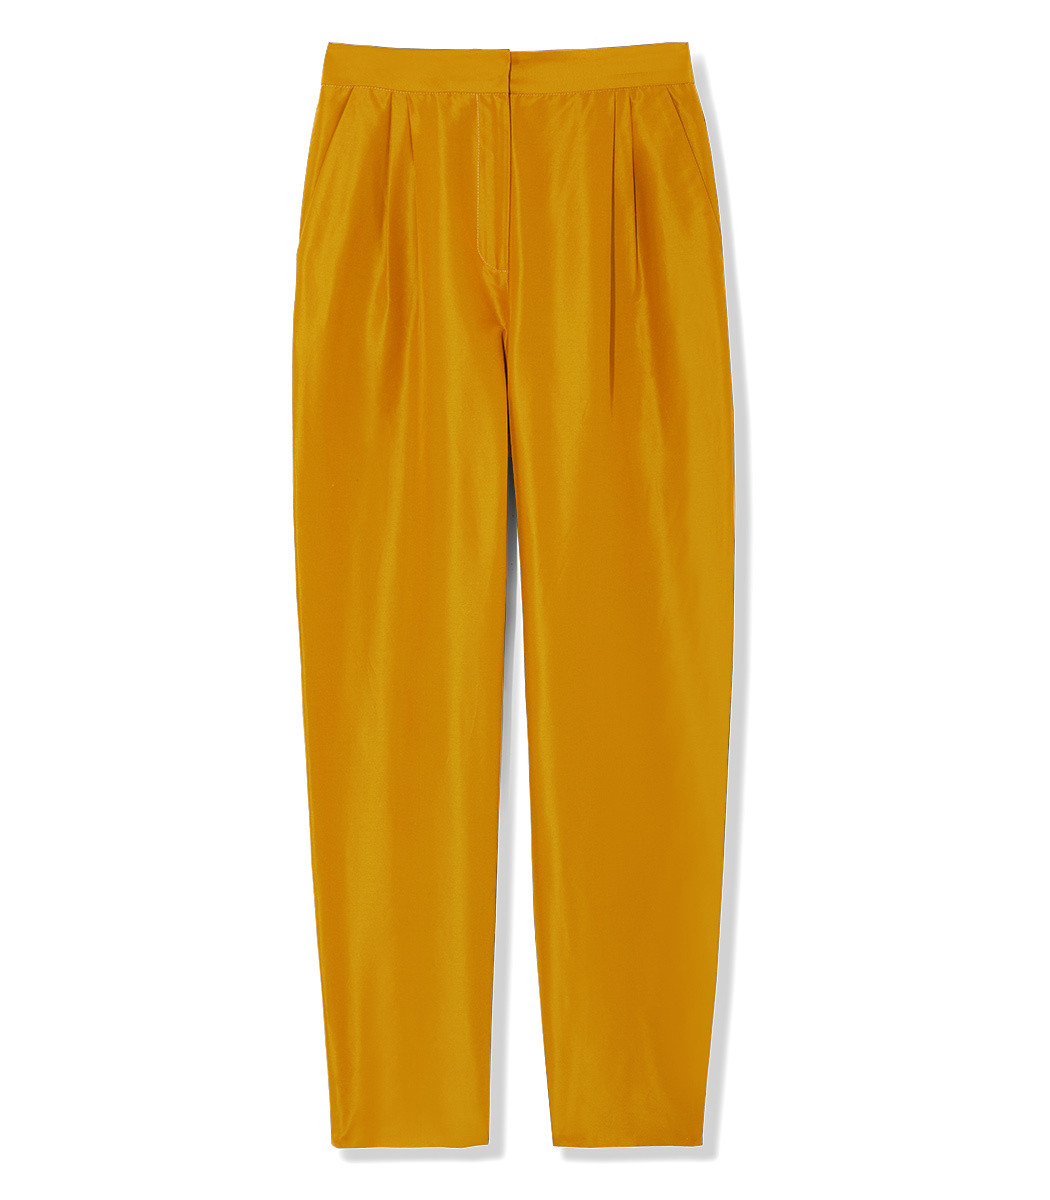 MANSUR GAVRIEL Cotton Silk Taffeta High Waisted Pant